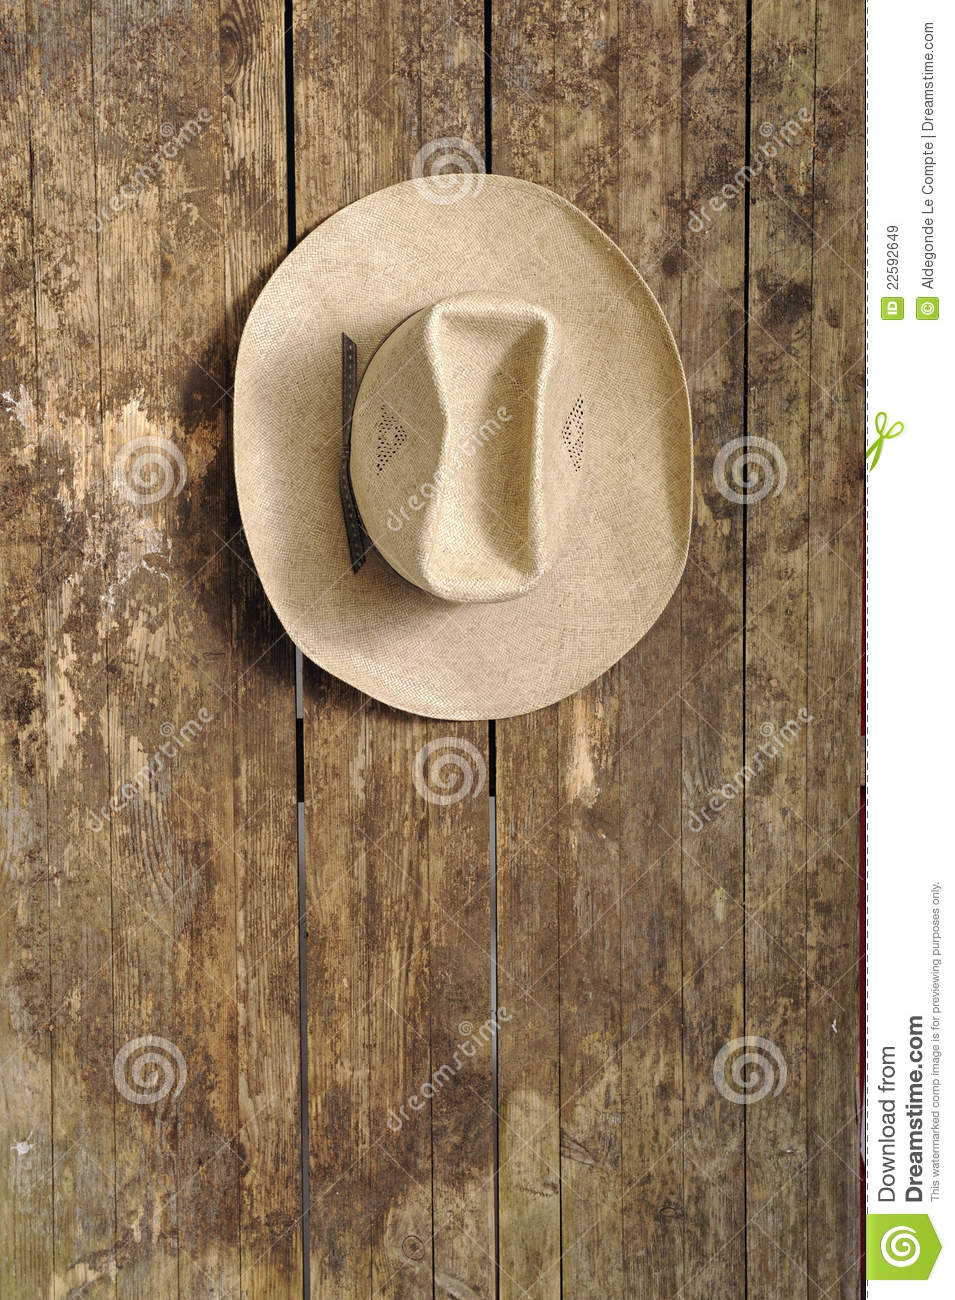 Cowboy Hat Hanging On An Old Wooden Wall Royalty Free